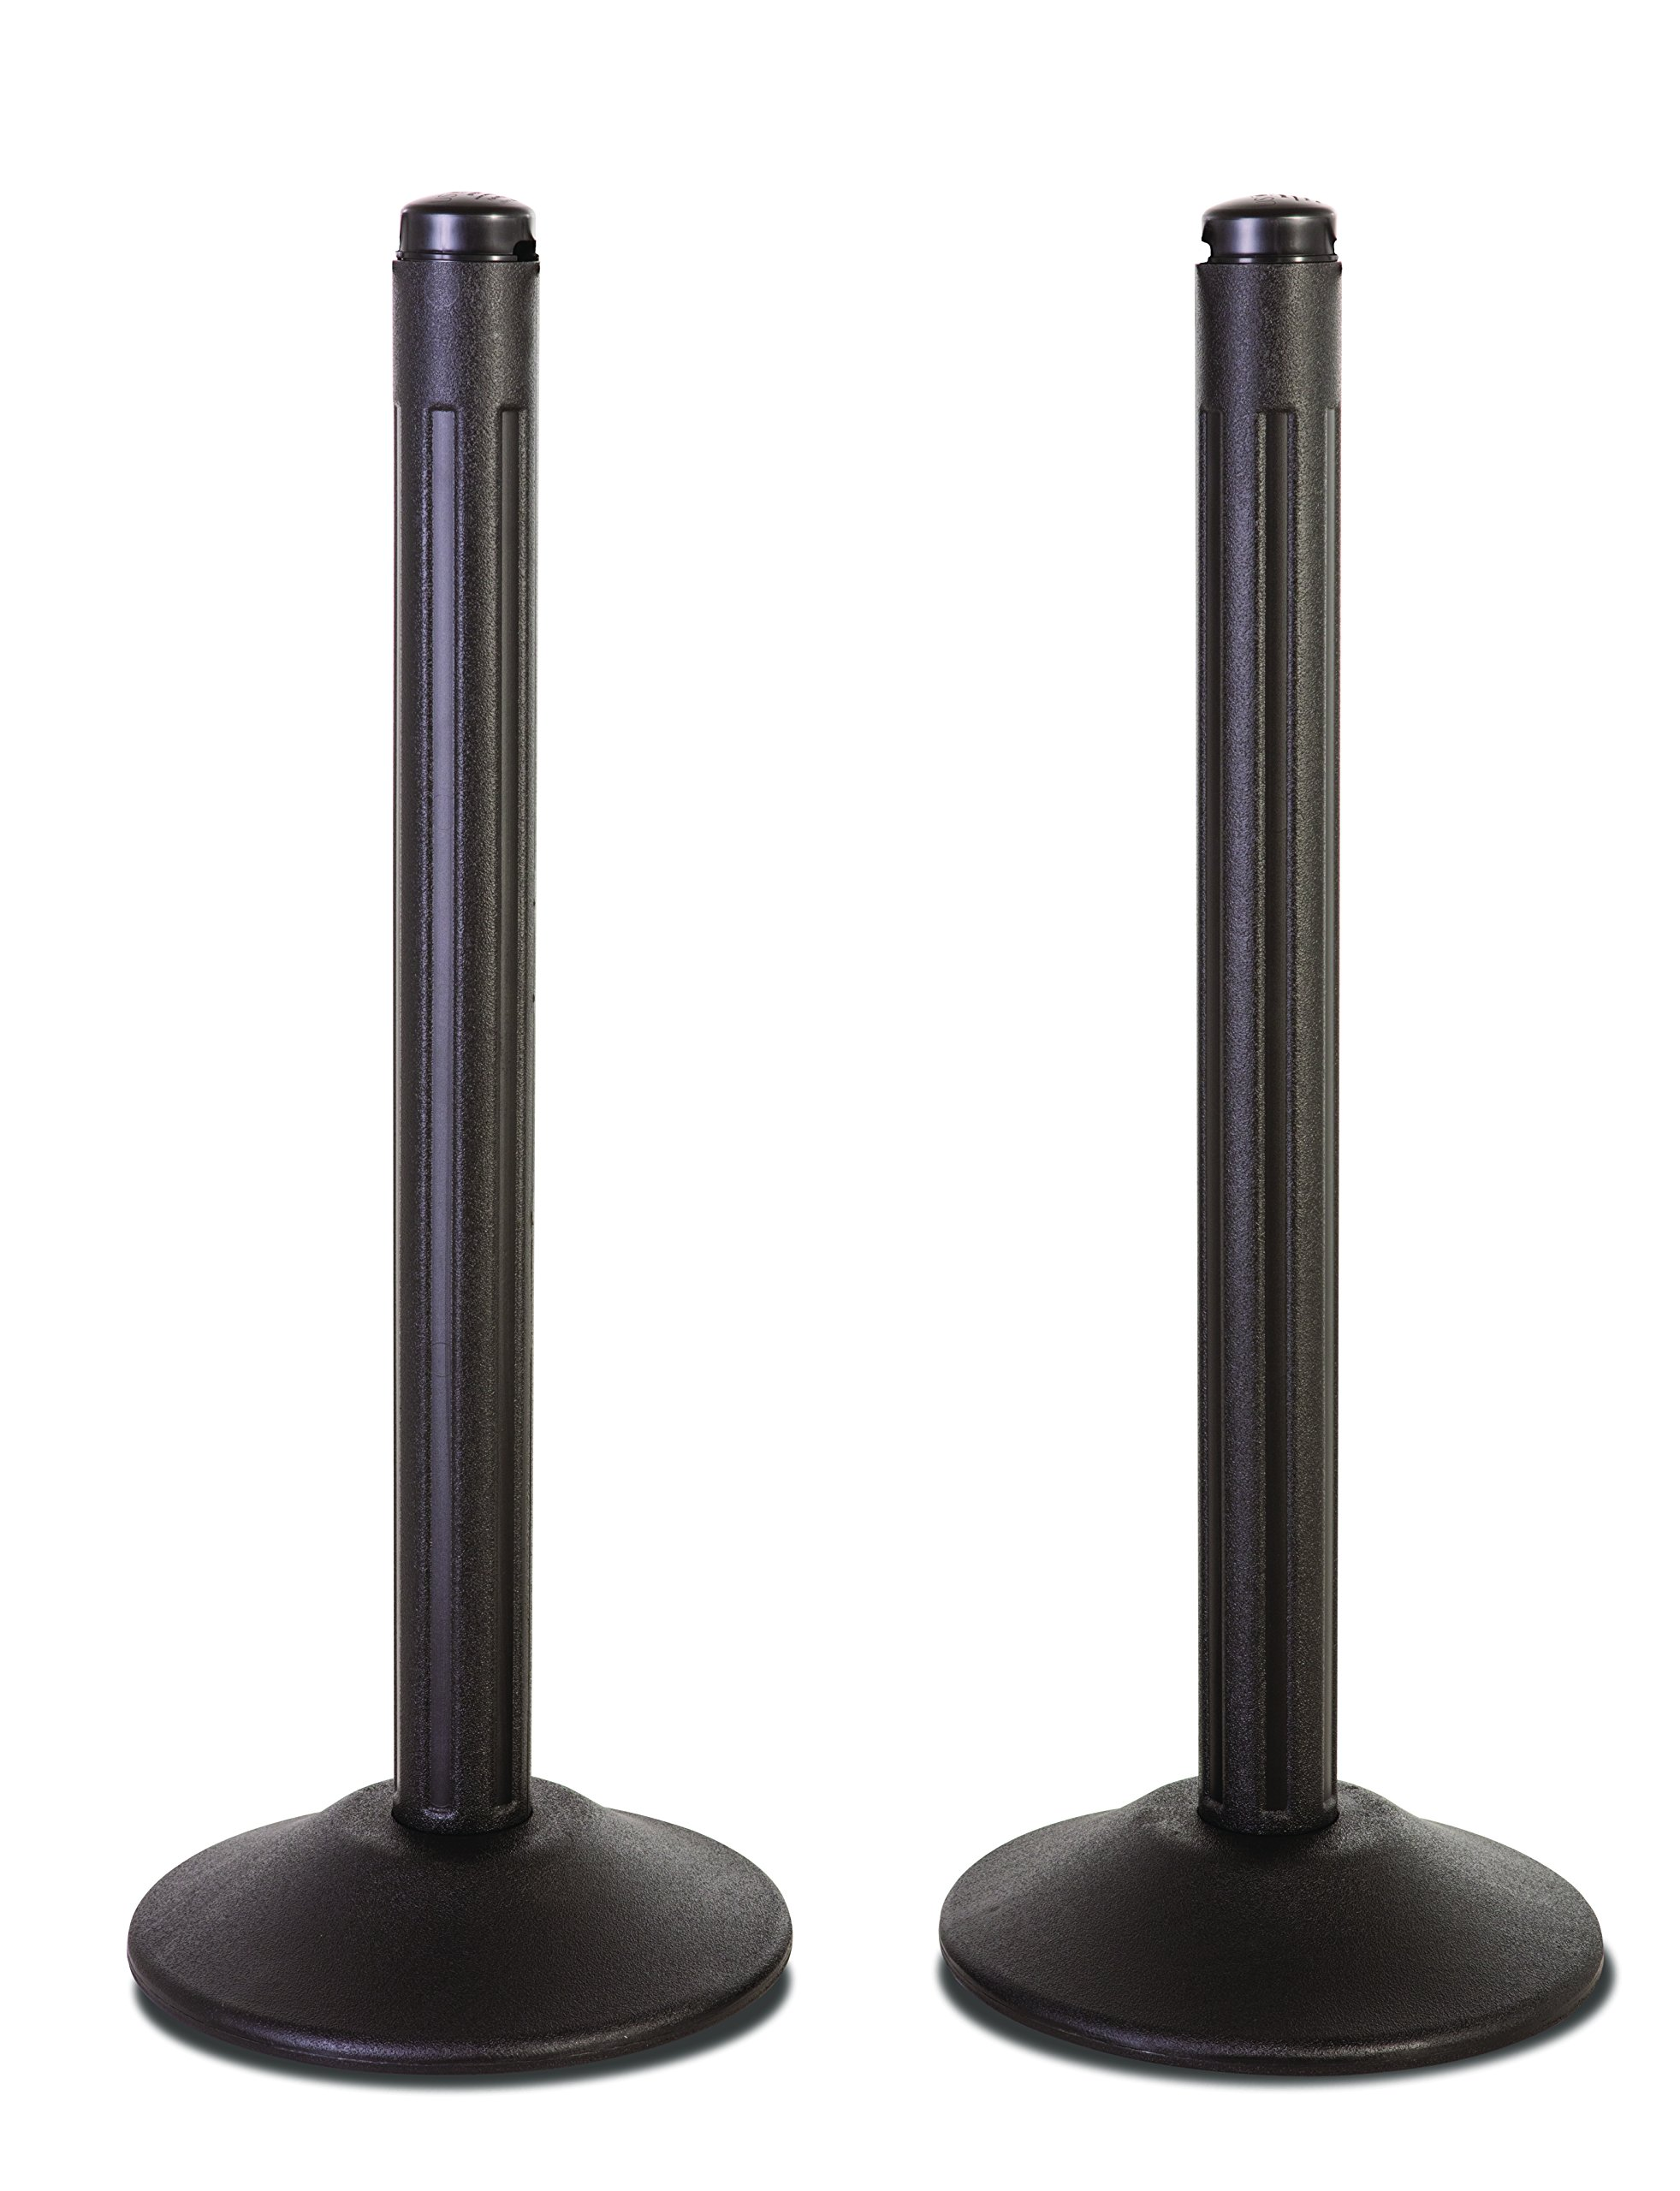 US Weight ChainBoss Outdoor/Indoor Stanchion – No Chain, Black